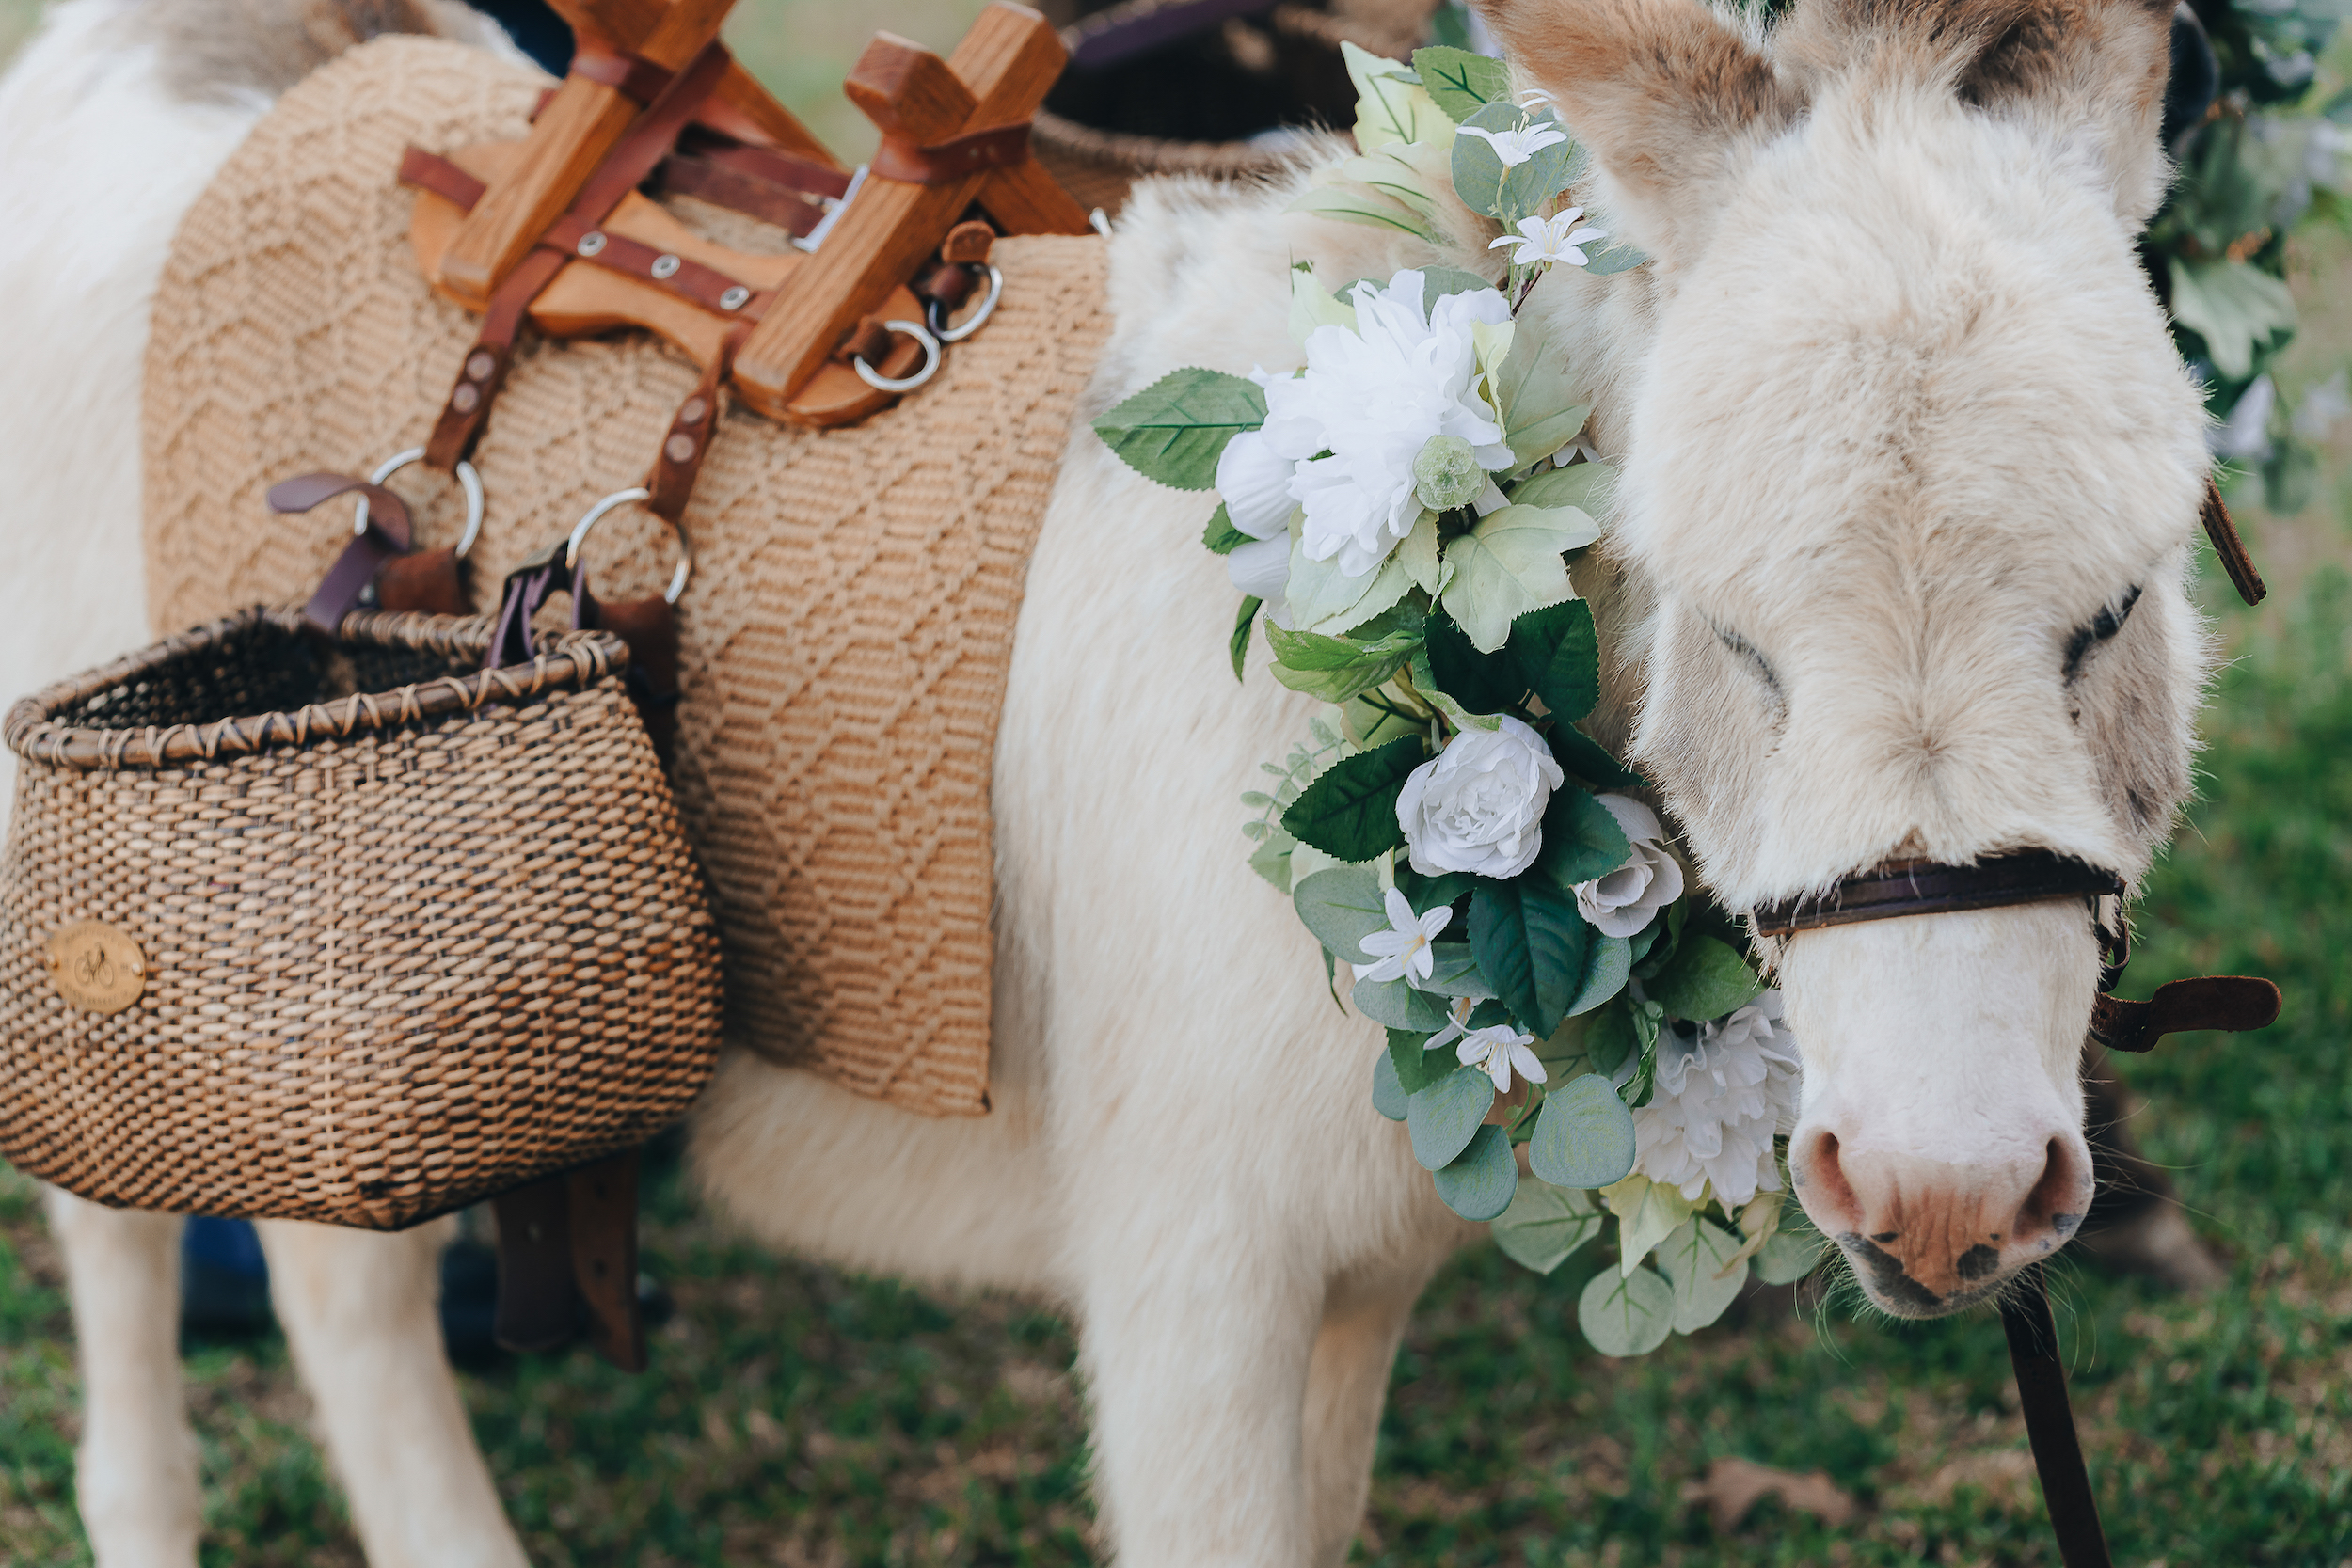 Donkey with pannier baskets and a white and green floral wreath around its neck.